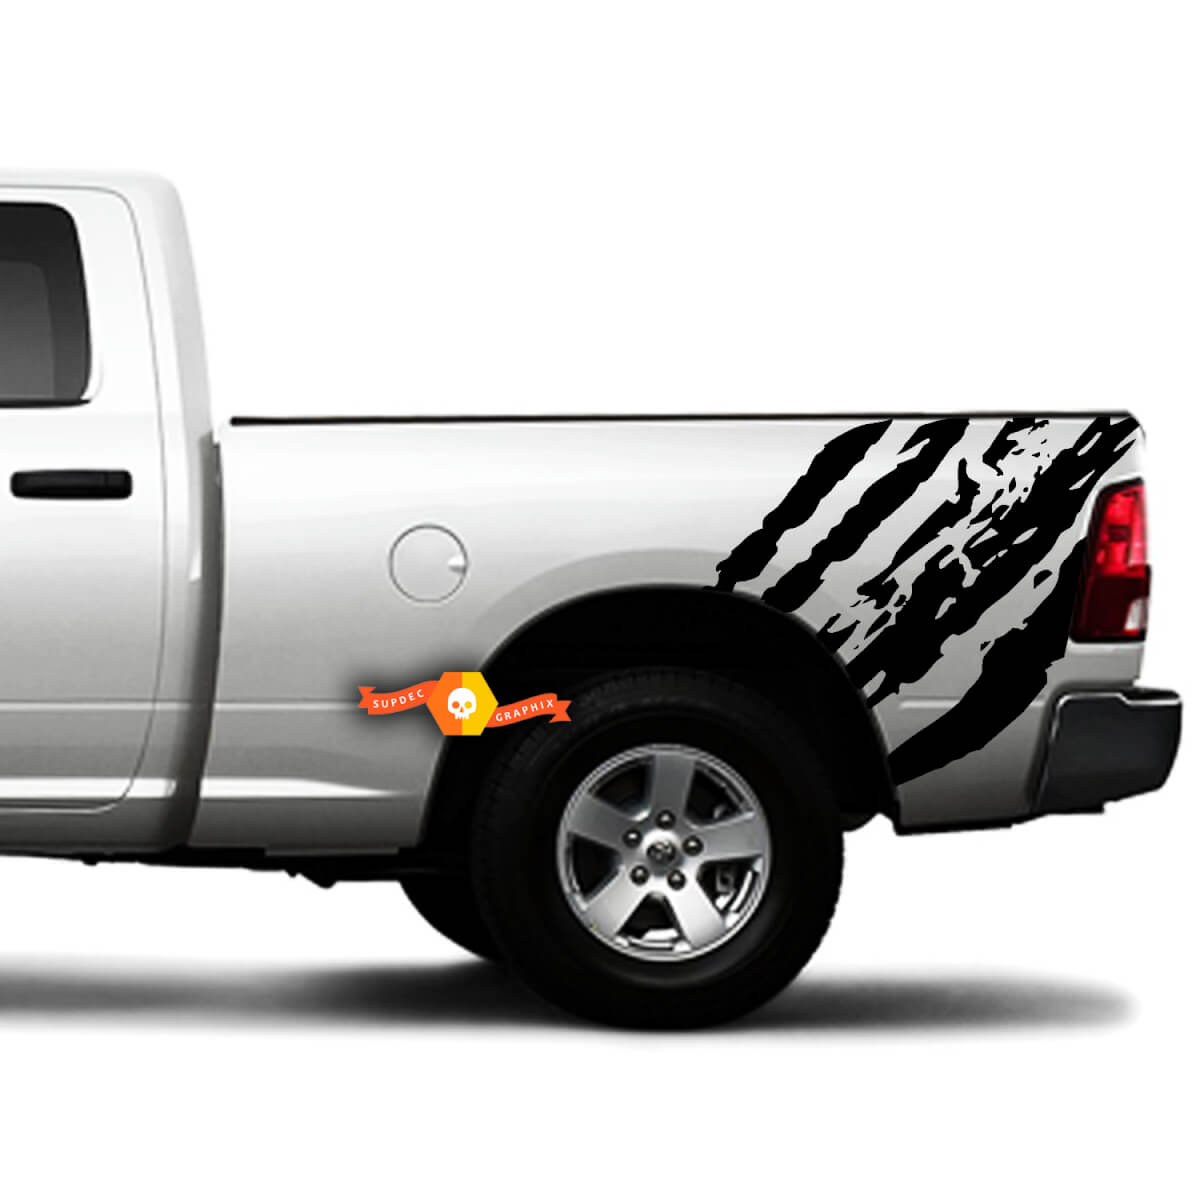 2 Side Splash Splatter Distressed Grunge Tribal Bed Side Pickup Vehicle Truck Vinyl Graphic Decal